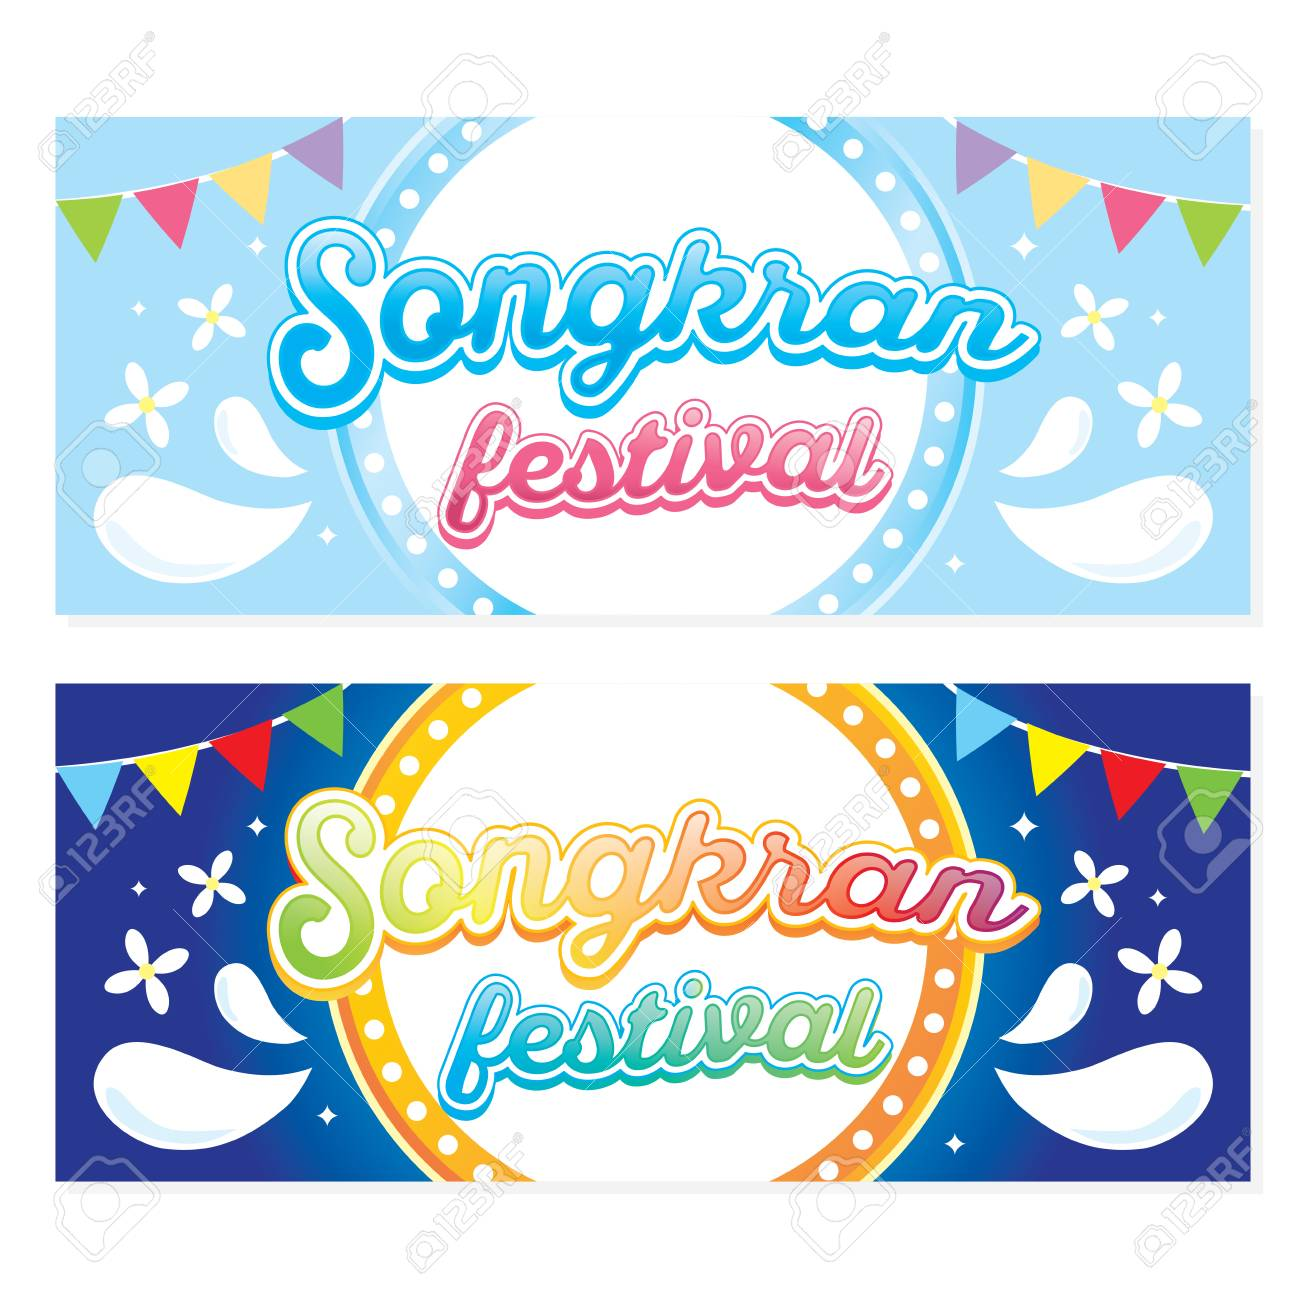 songkran festival thai new year party banner colorful for banner greeting card website stock